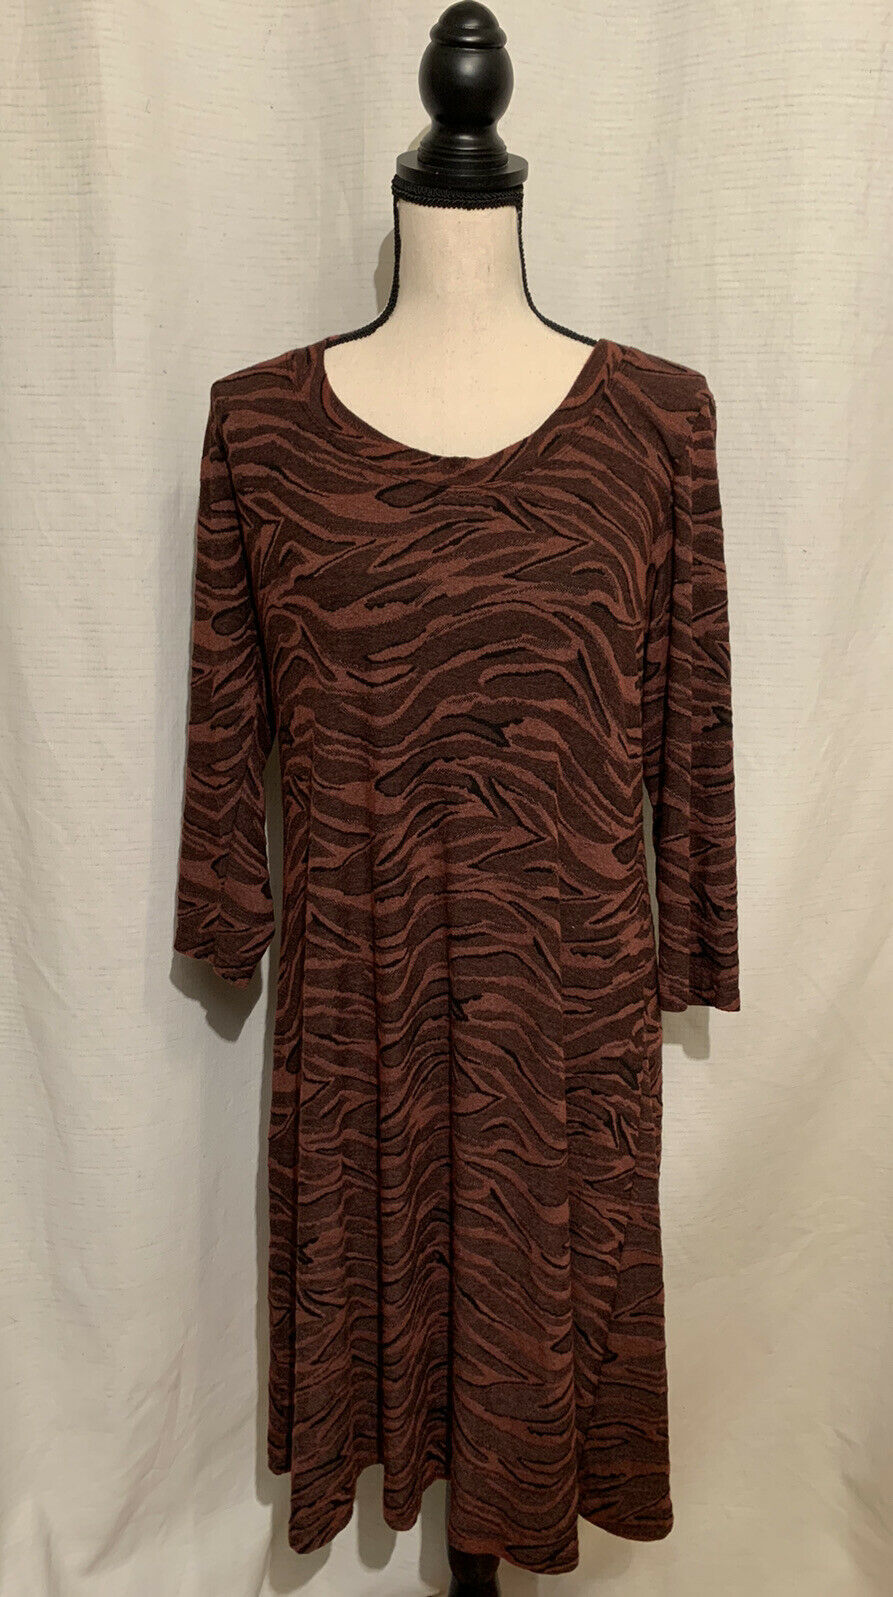 Primary image for Cut Loose Vintage Dress Size Large Animal Print Button Back Red Black Midi USA